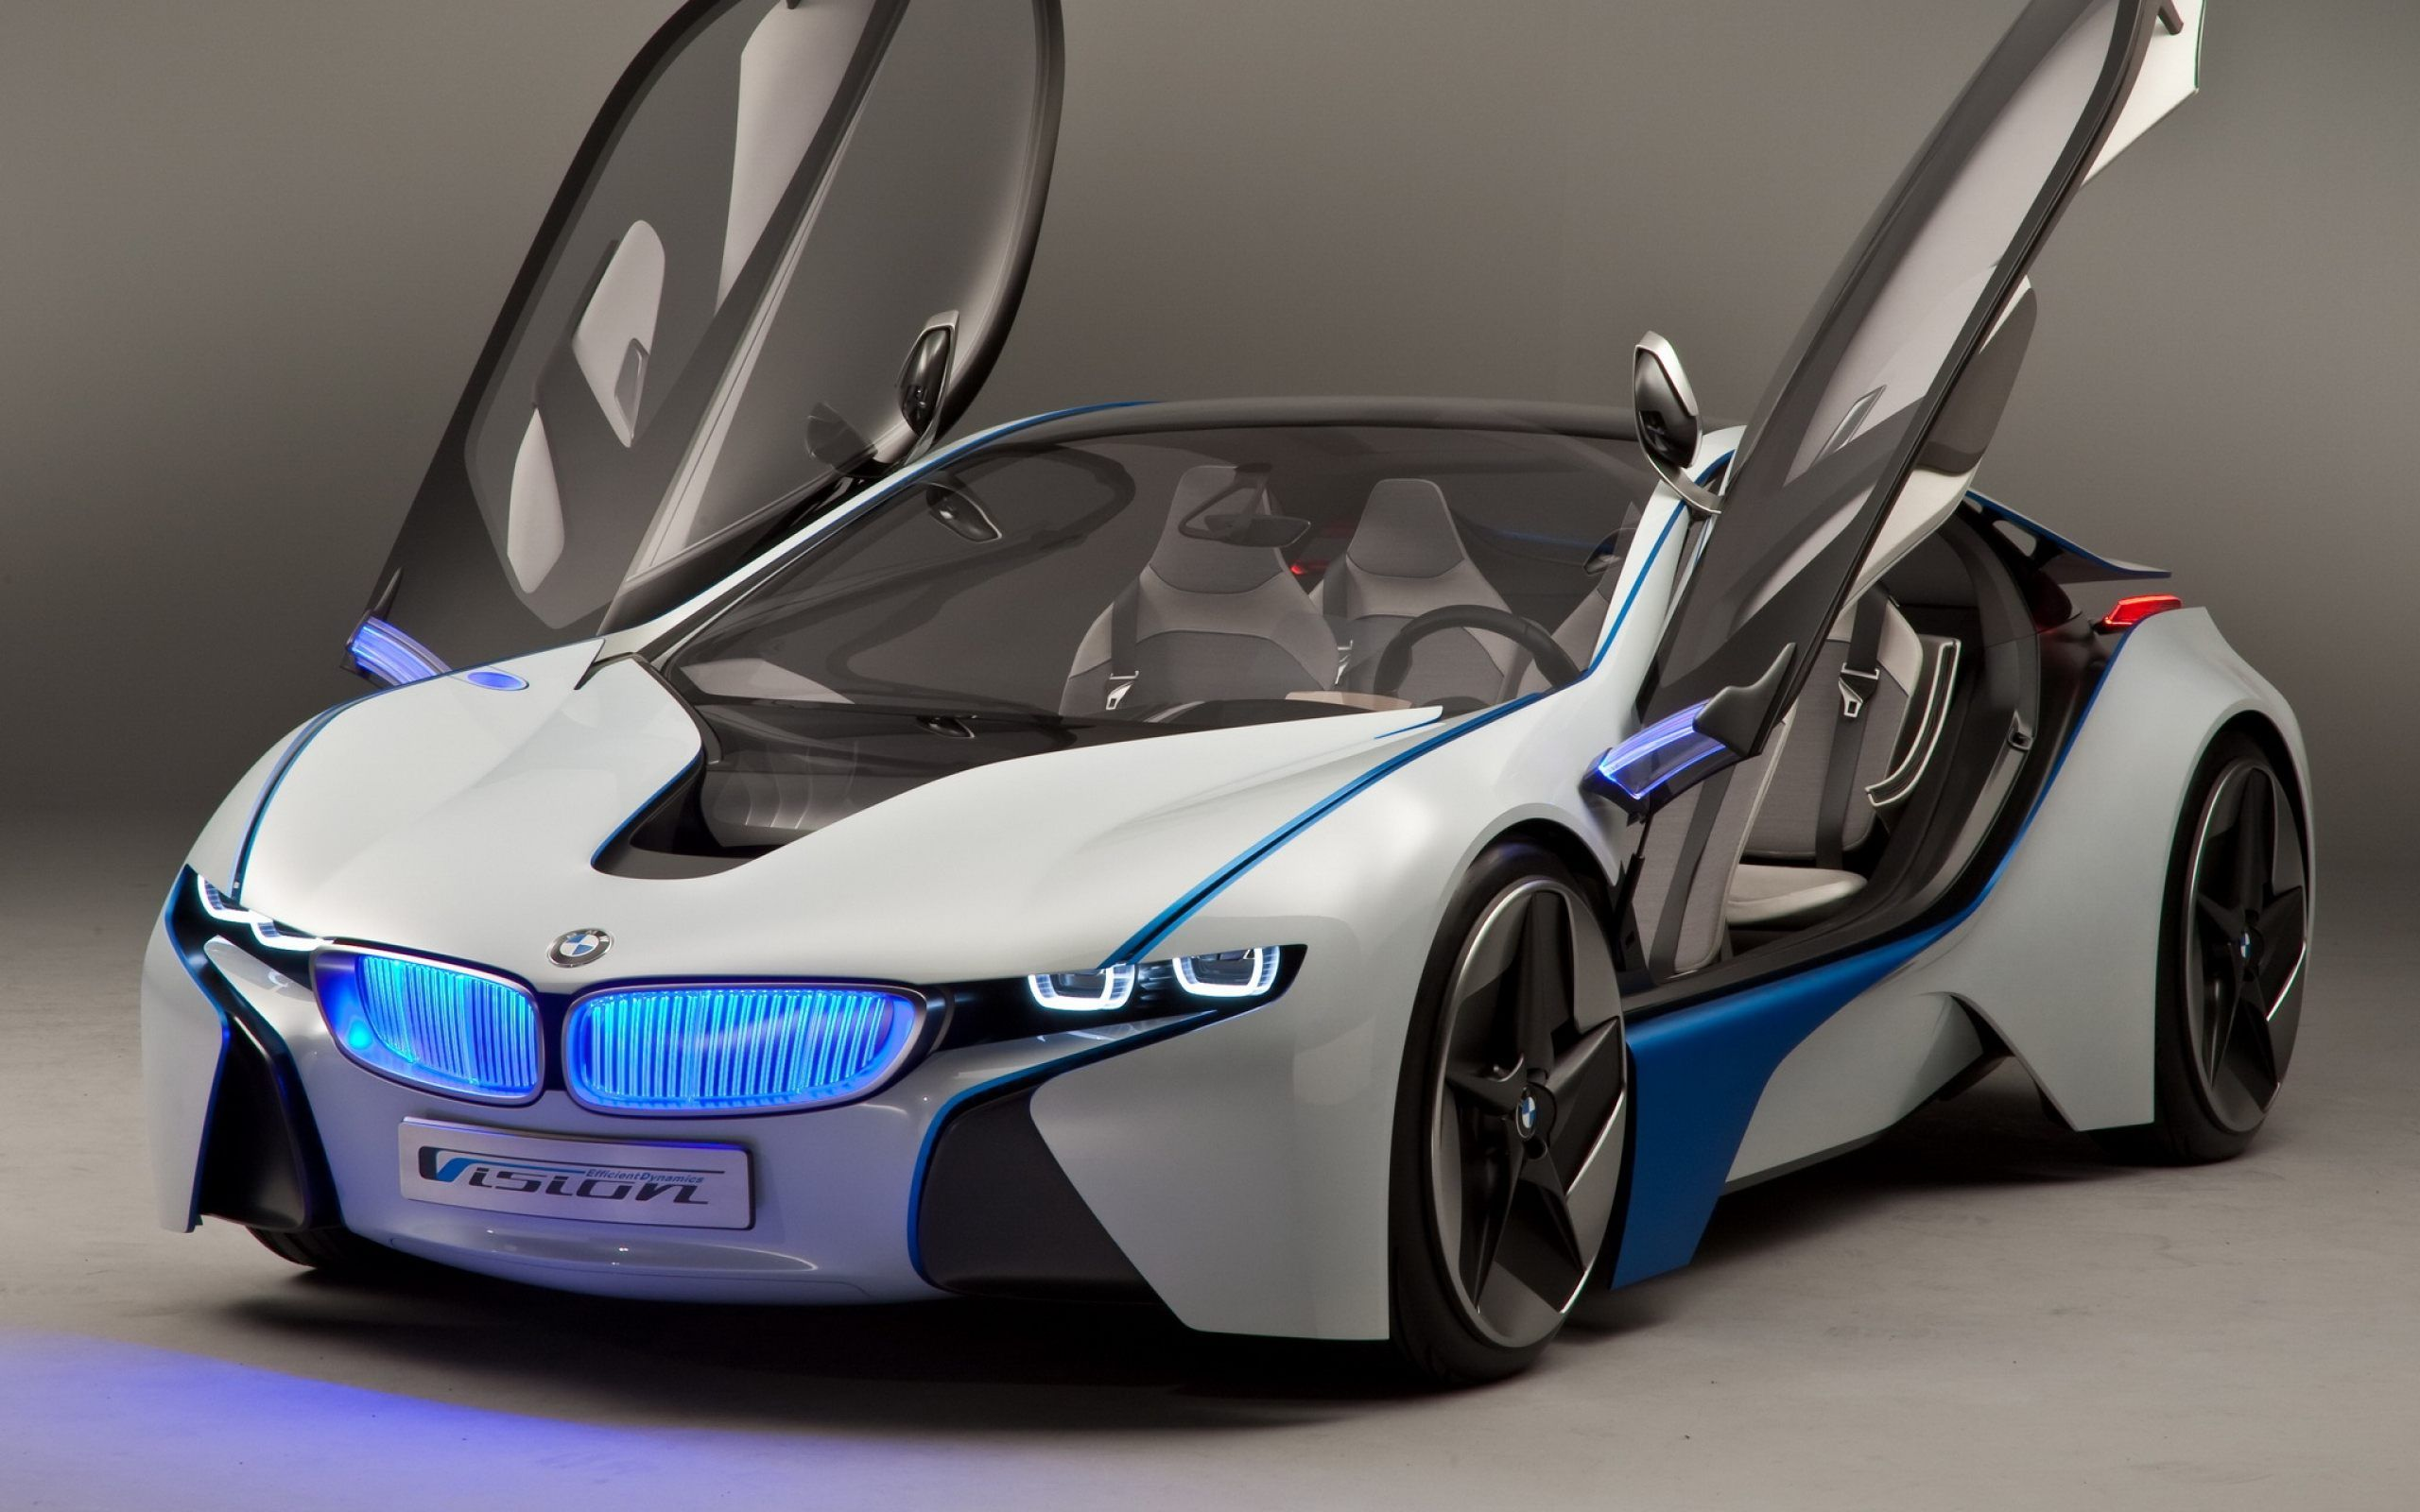 Genial Bmw Sports Car Pictures Home Design Ideas Mecvns.com